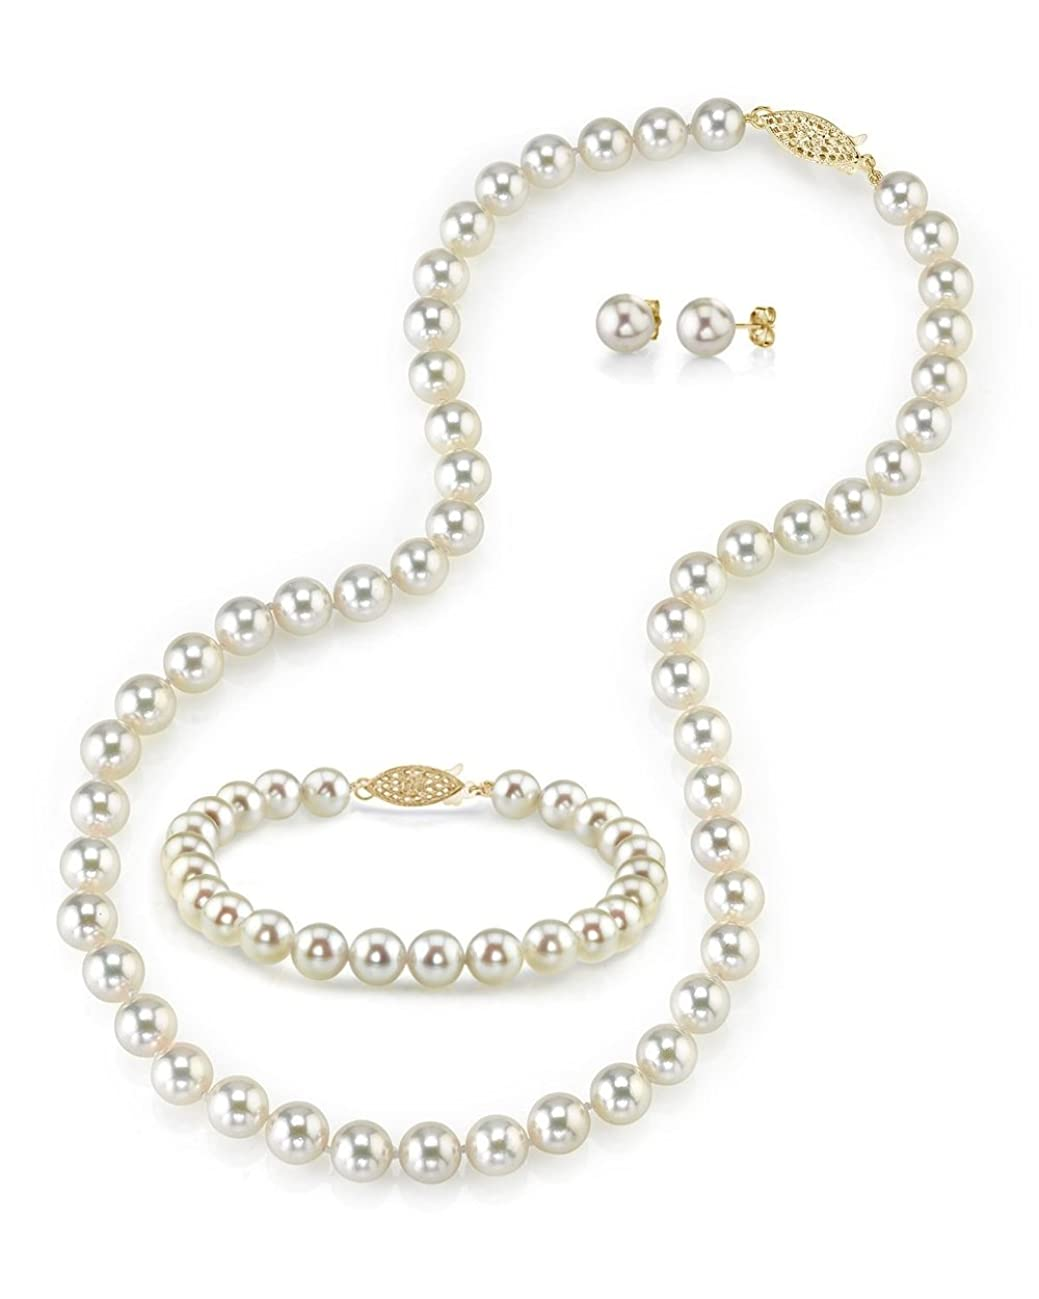 THE PEARL SOURCE 14K Gold 7-7.5mm Round White Akoya Cultured Pearl Necklace, Bracelet & Earrings Set in 17